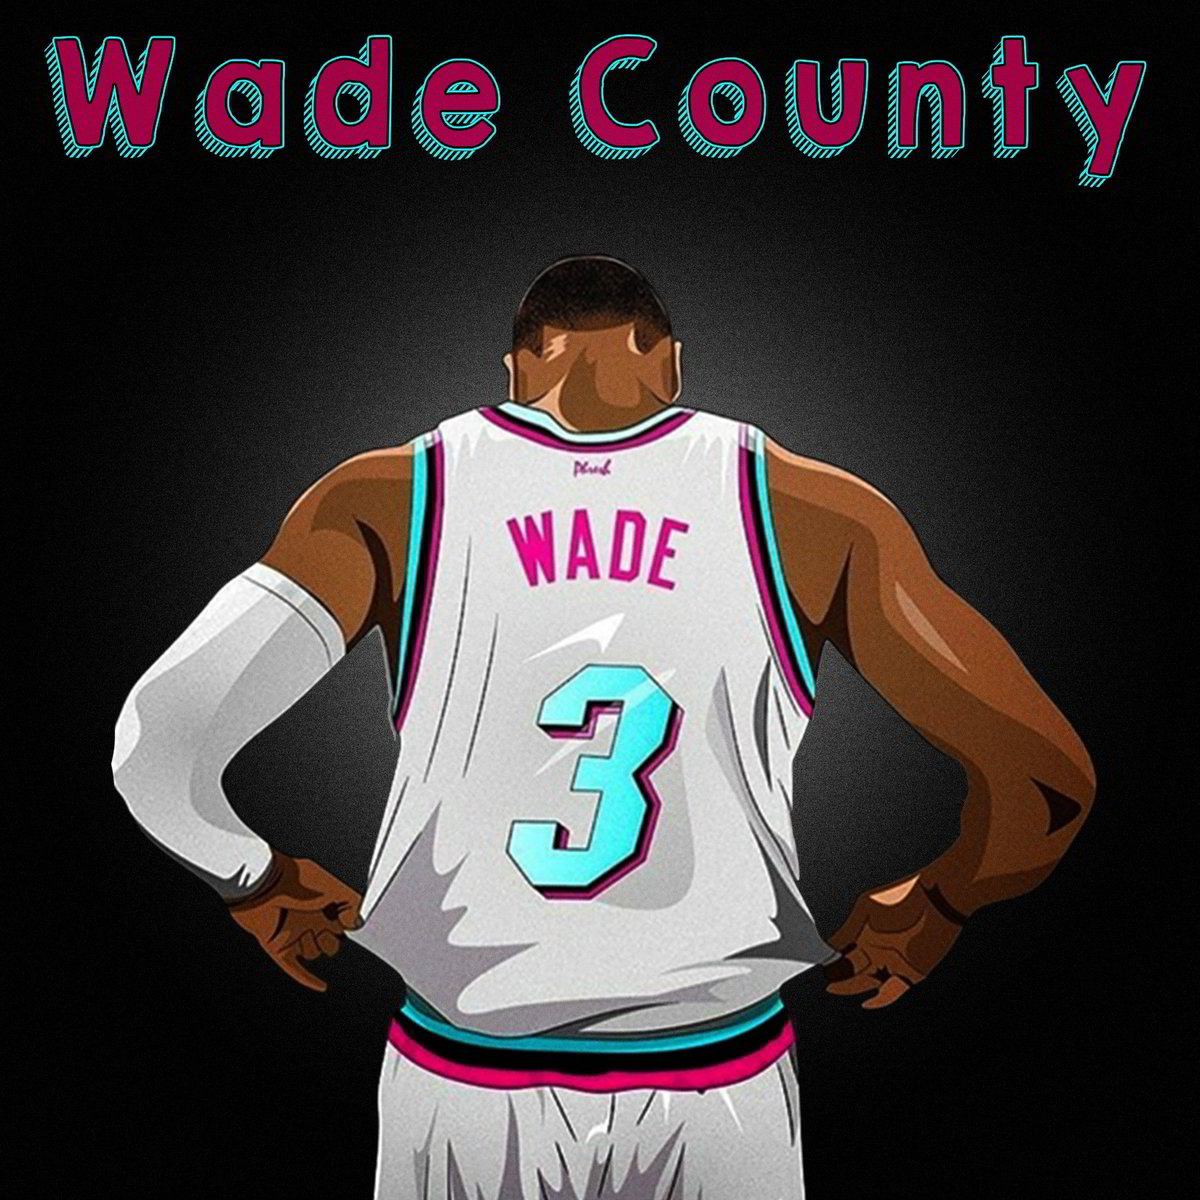 Wade County (Single) MP3